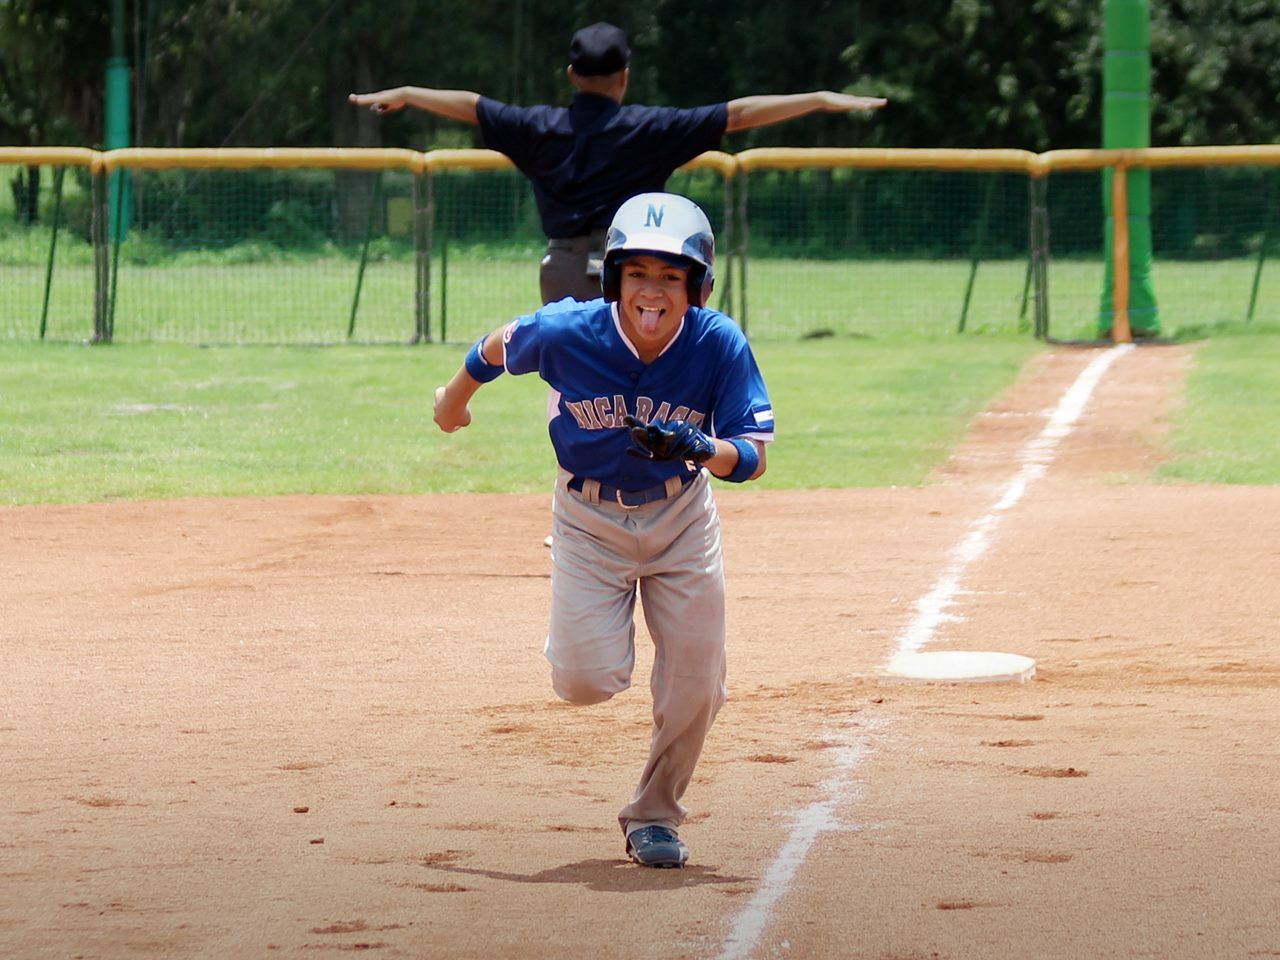 12 nations competing in U-10 Pan-Am Youth Baseball Championship 2016 in Nicaragua